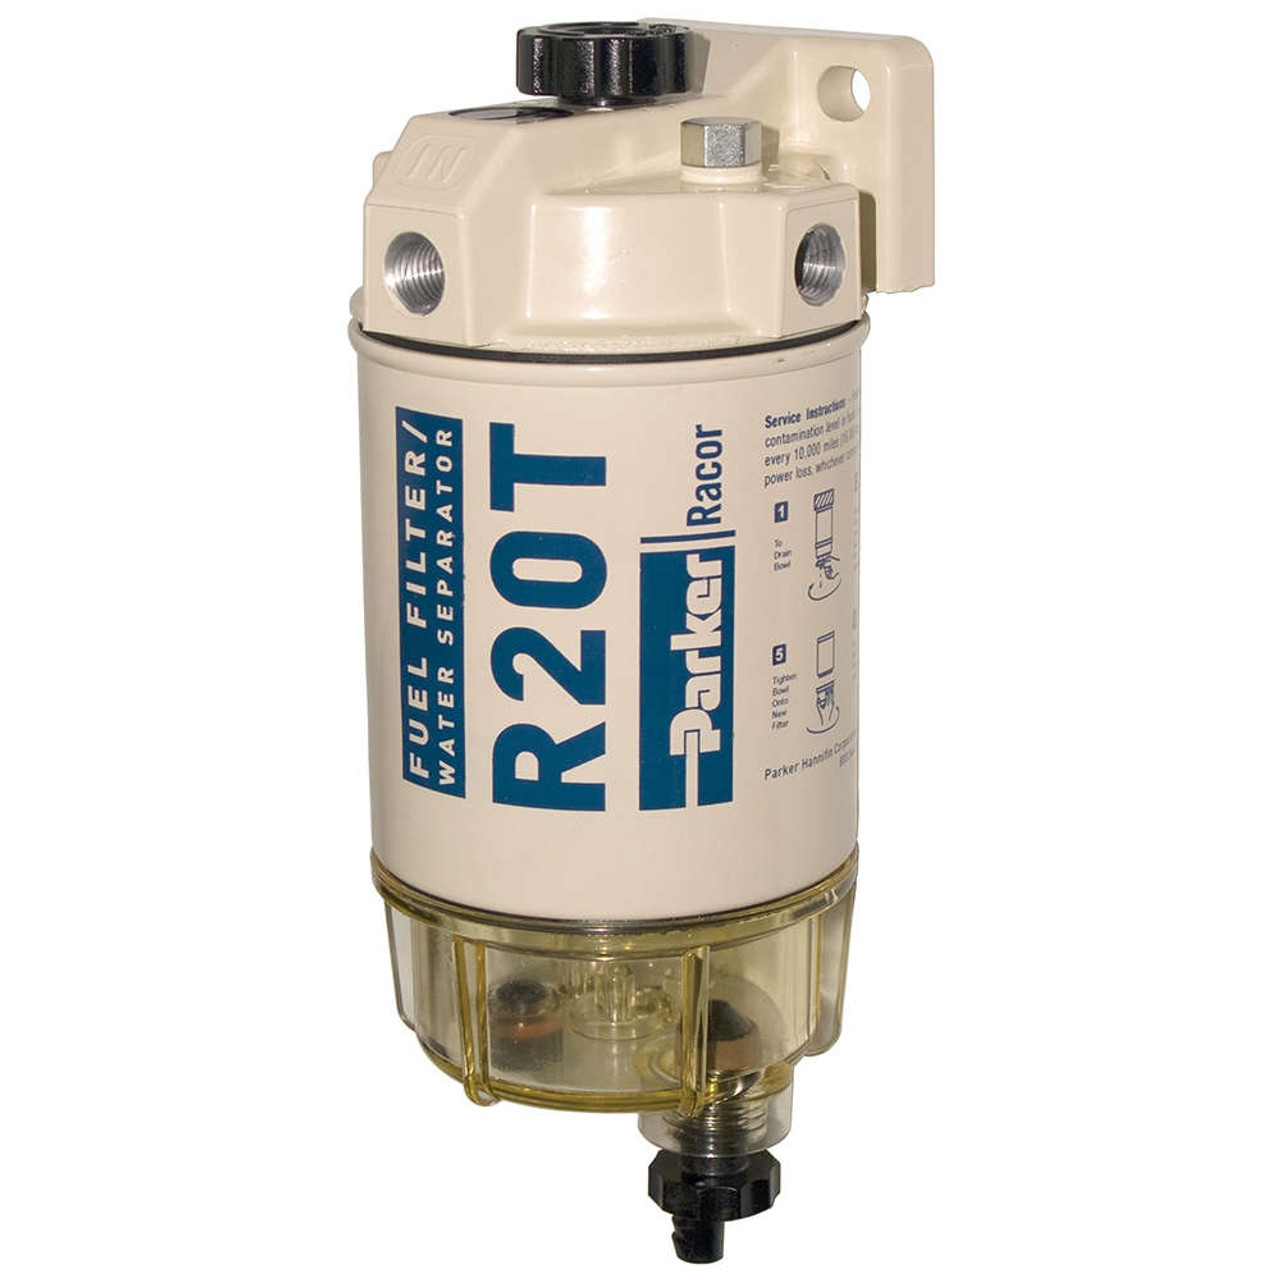 Racor 200 Series 30 Gph Low Flow Diesel Fuel Filter  Water